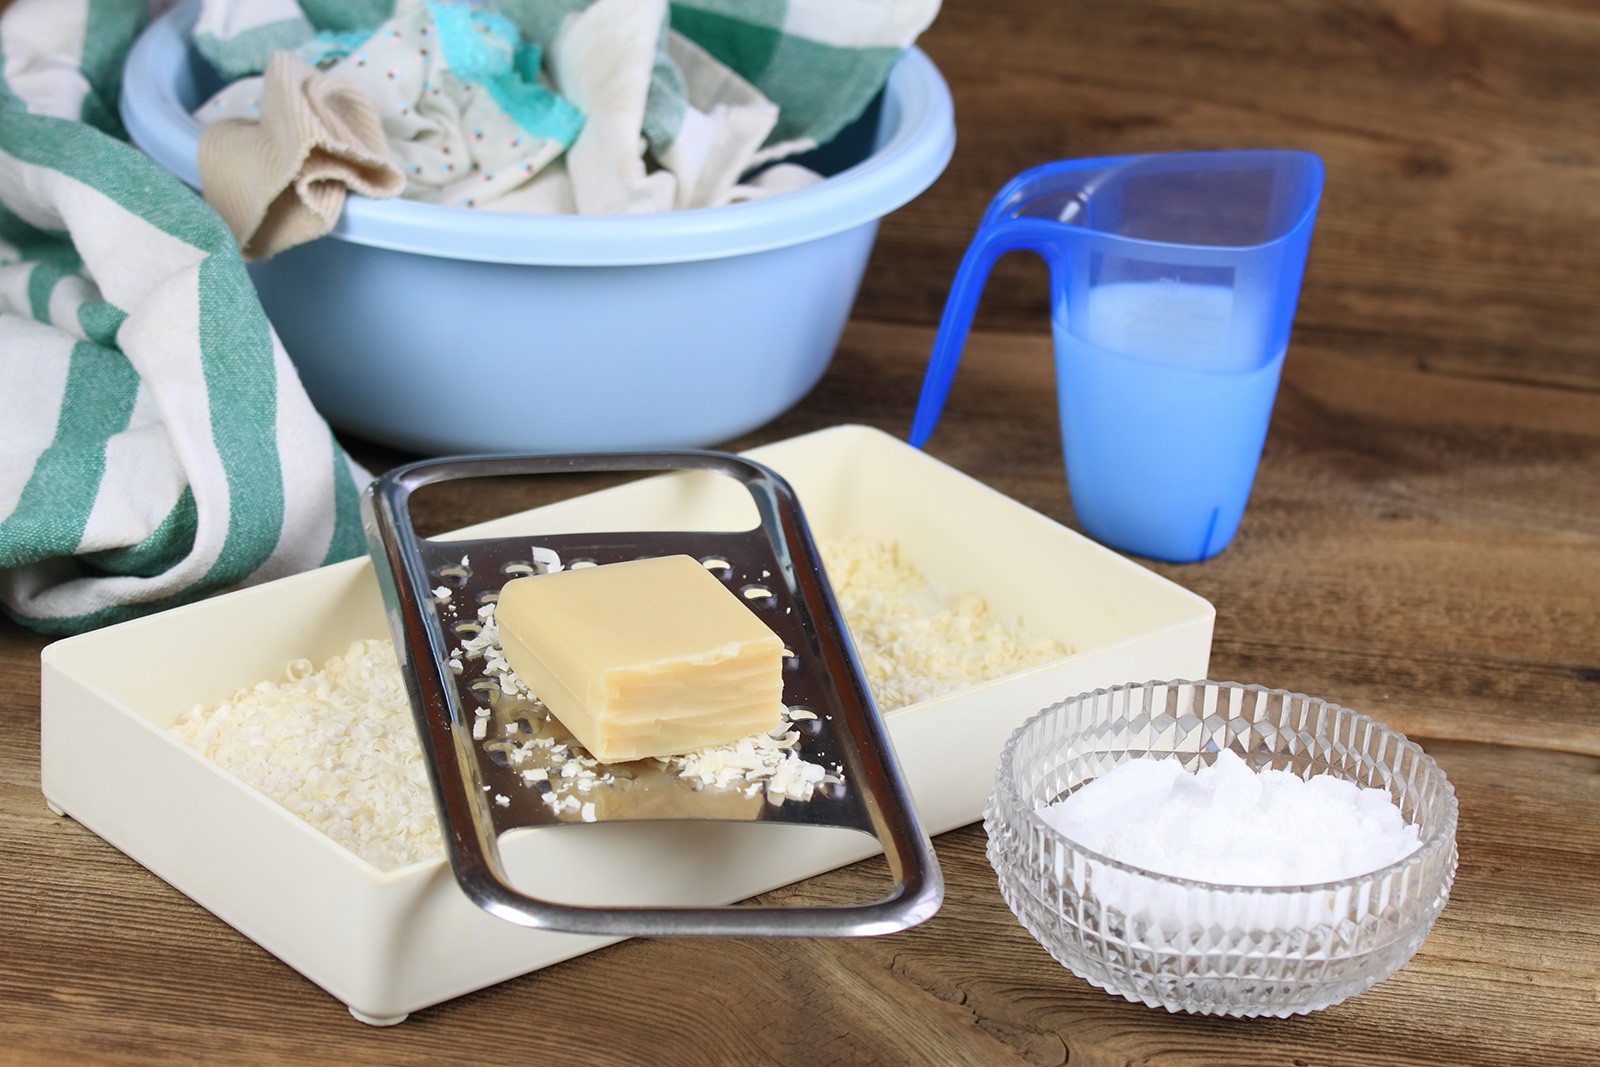 Soap and grated soap, crystalline-sodium in a bowl, and some clothes/cloths in a shallow bucket.